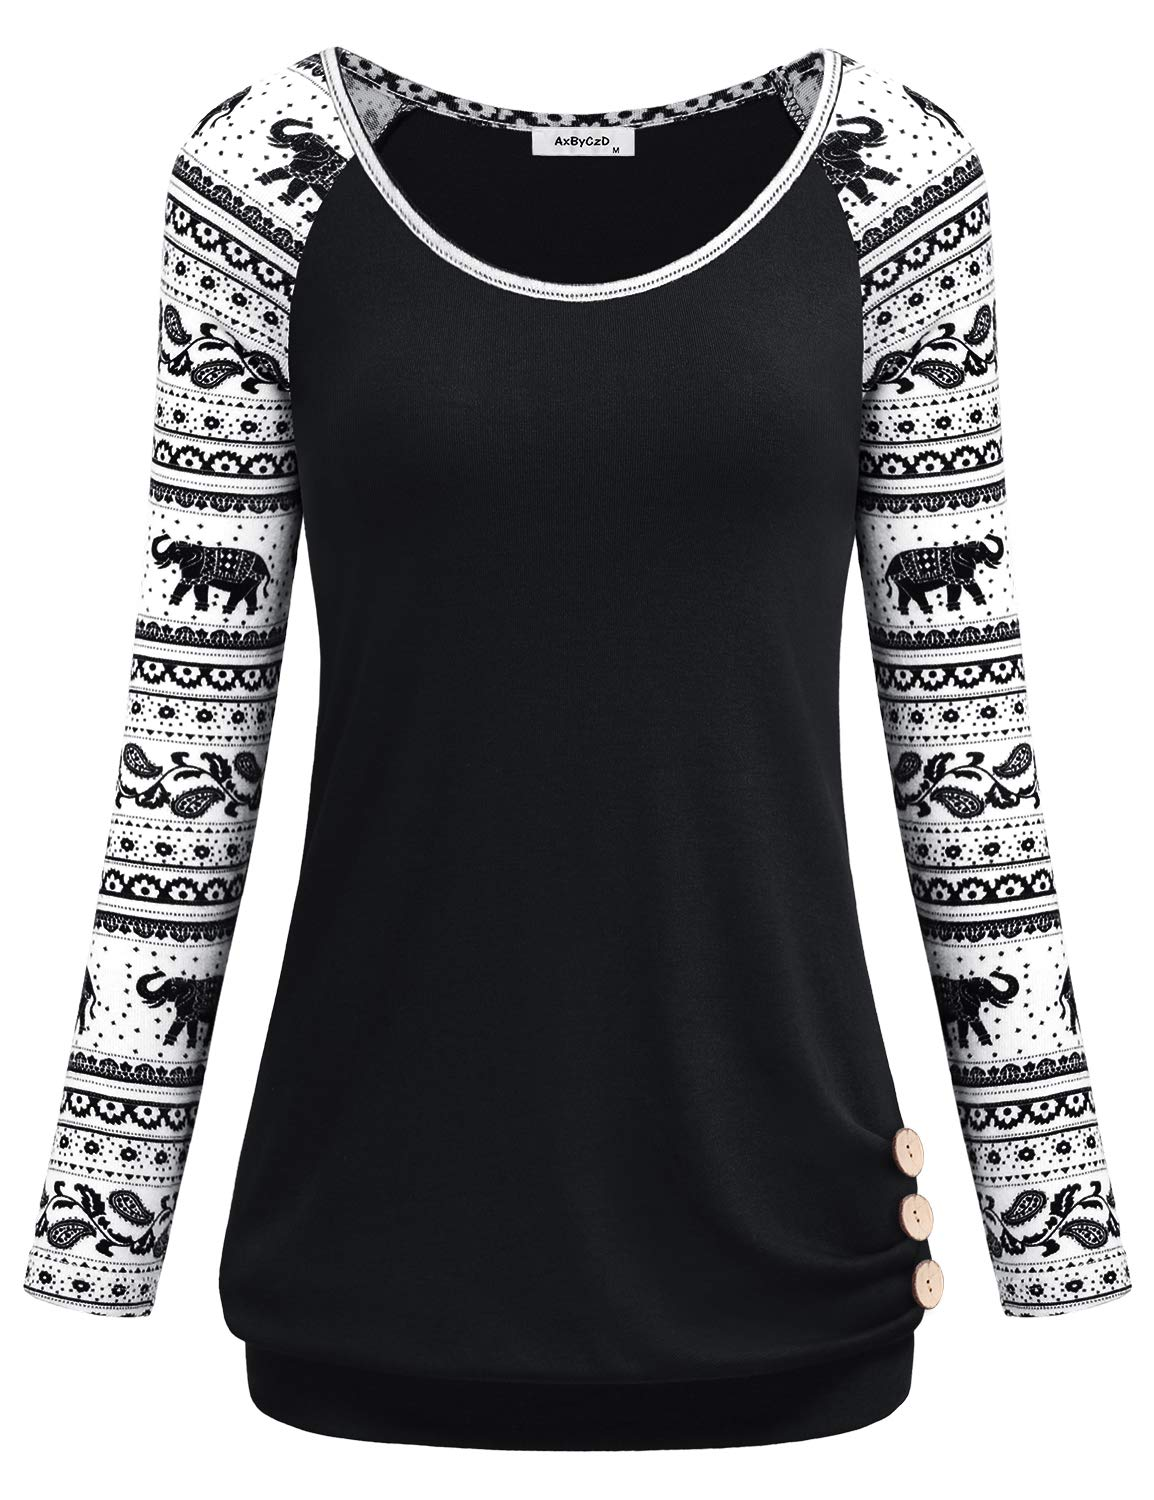 AxByCzD Cute Sweatshirts for Women,Ladies Tops Business Casual Long Sleeve Round Neck Clothes T Shirt Banded Bottom Hipster Lightweight Flowy Tunic Shirts Clothing Black Medium